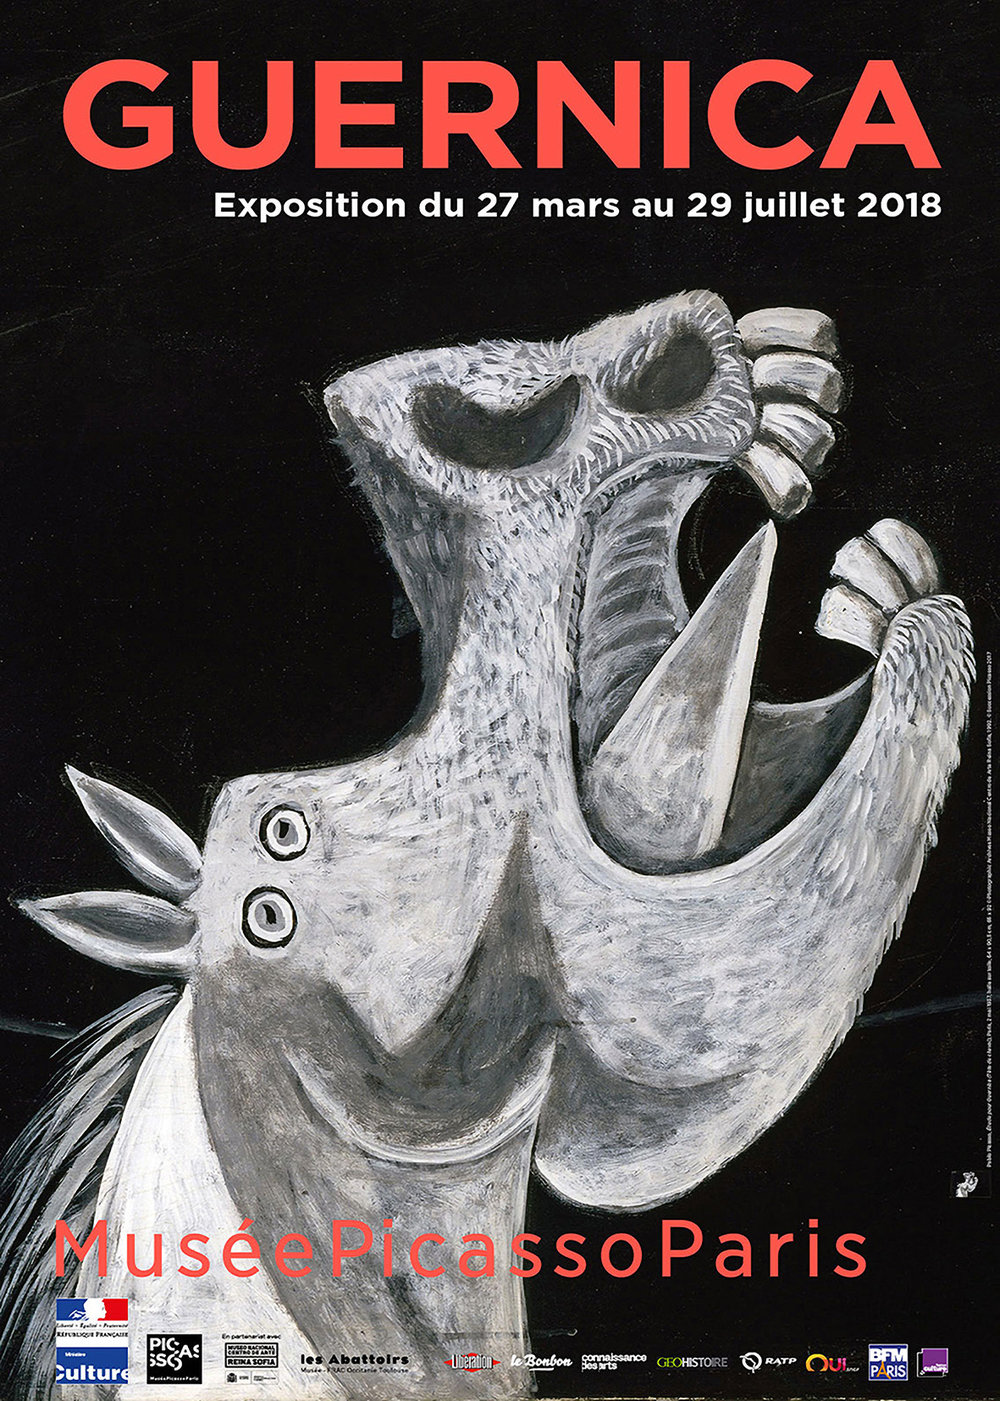 © Musée National Picasso Paris